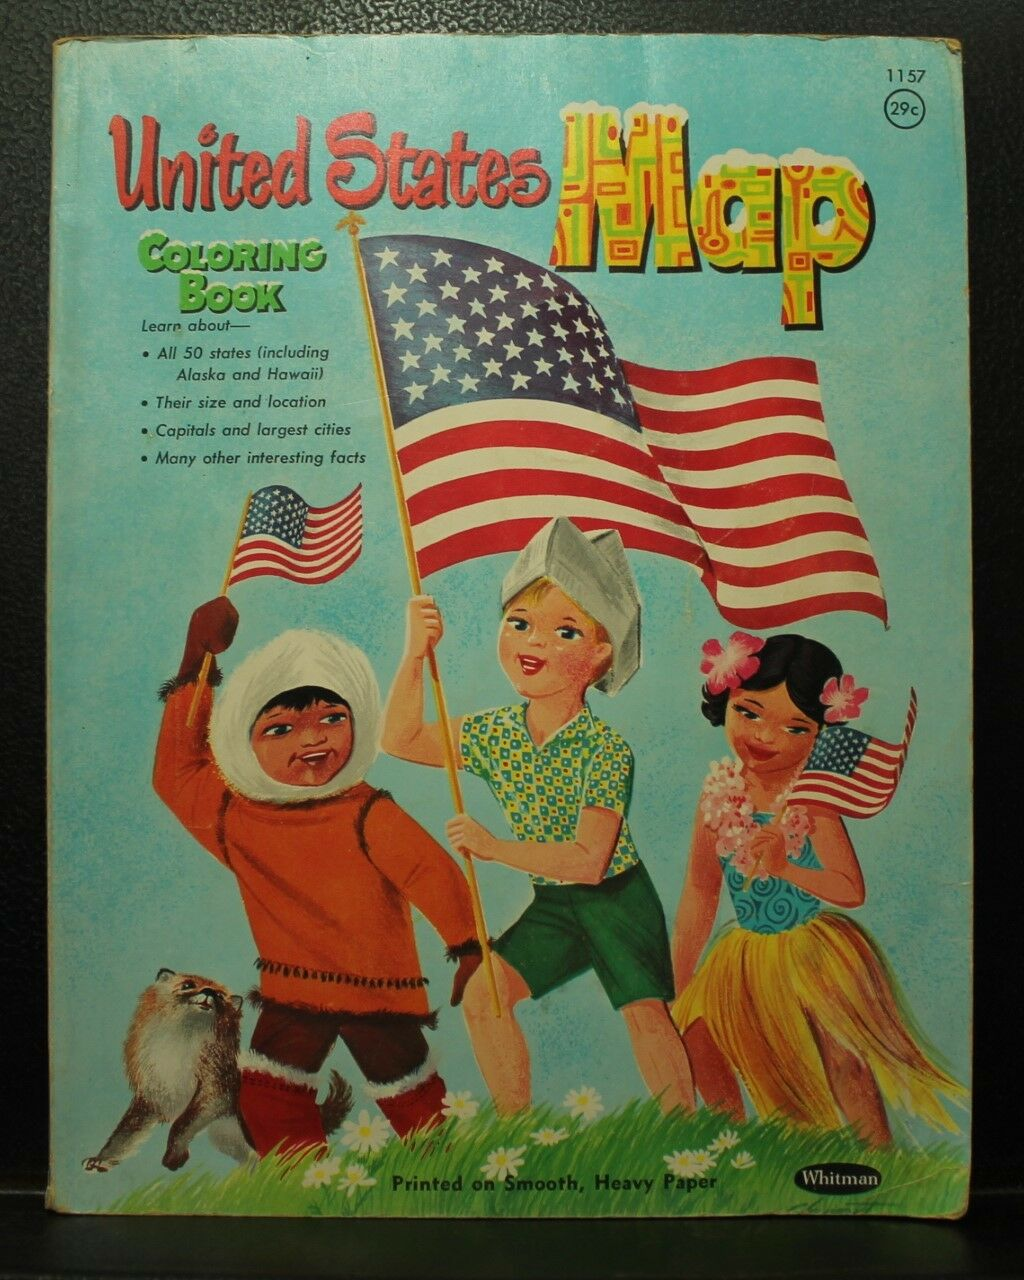 Us Map With State Abbreviations And Time Zones%0A united states including alaska and hawaii map united states map coloring  book    states including alaska